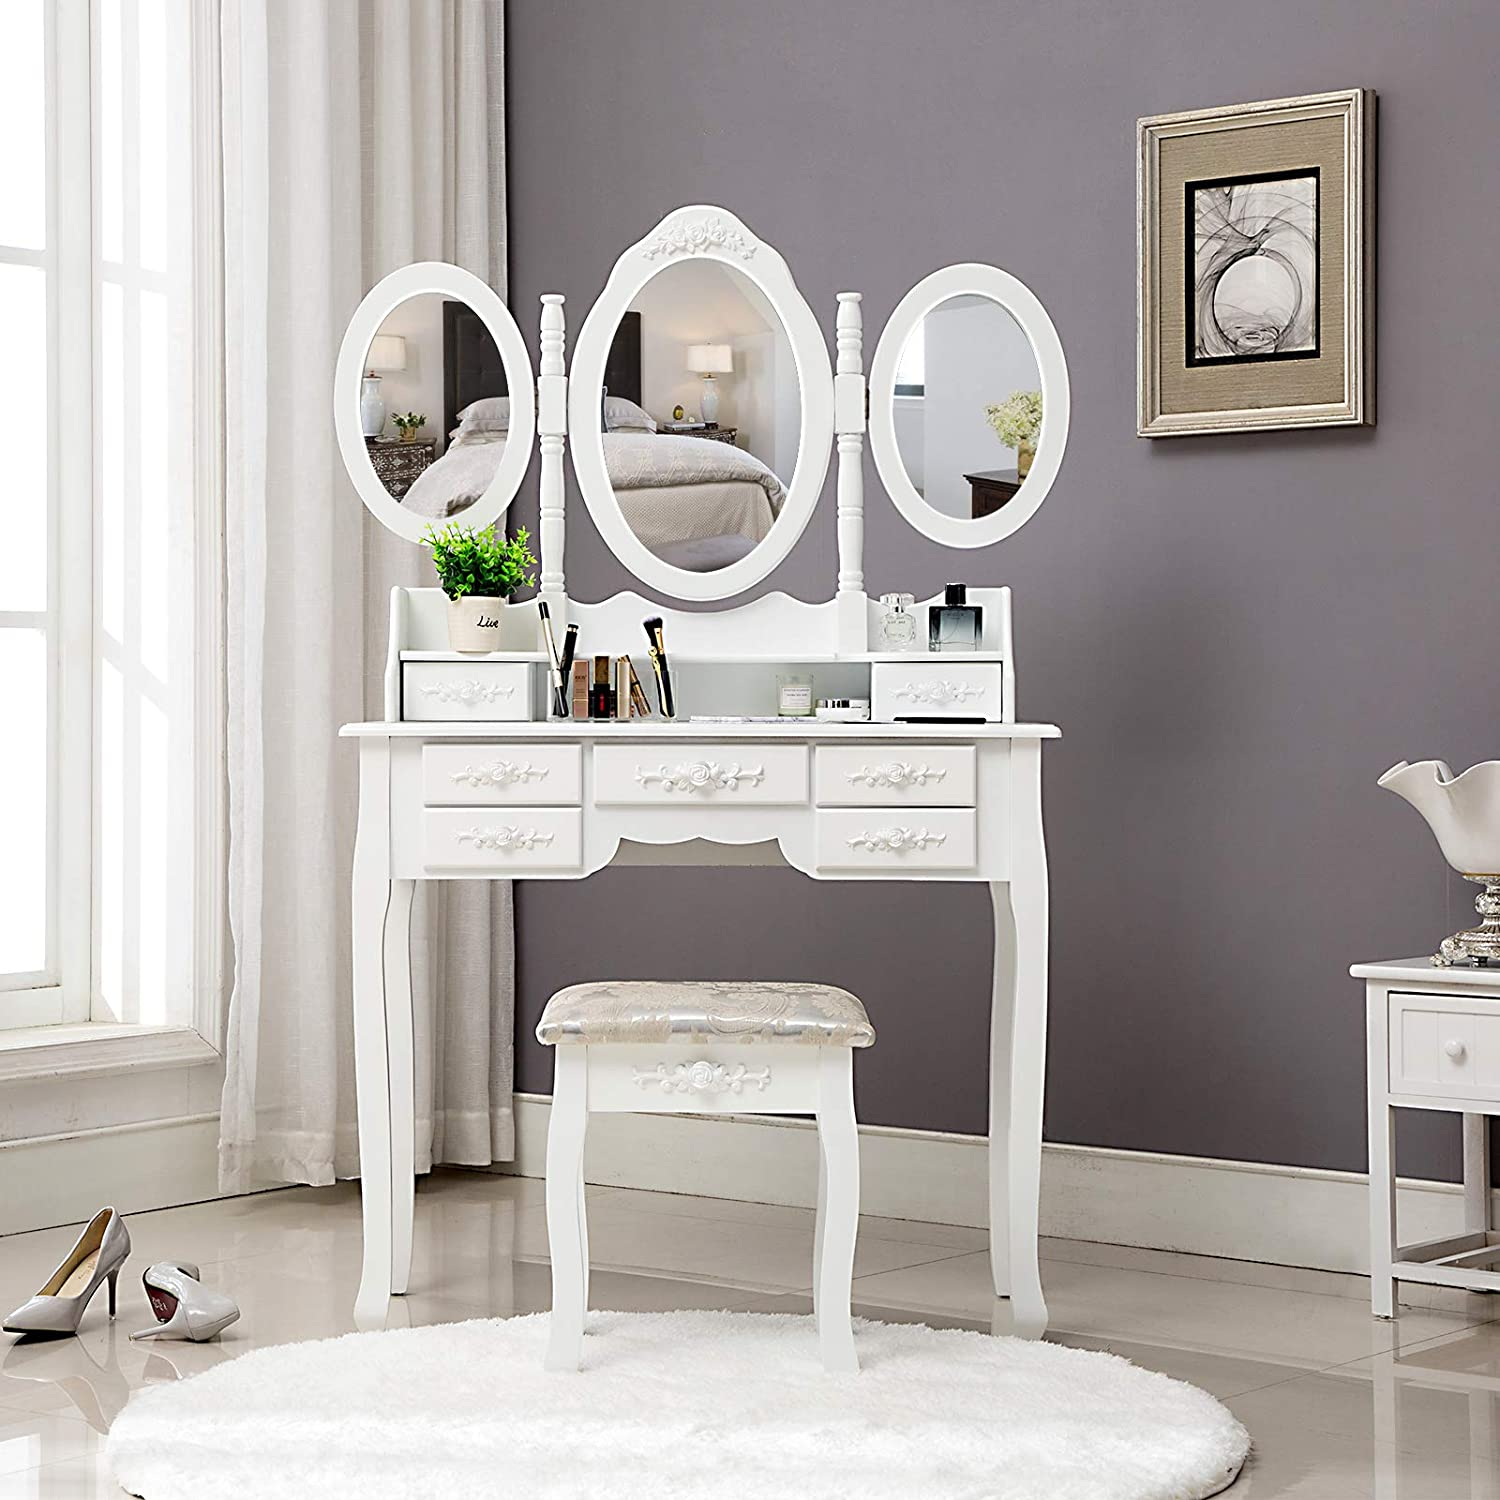 Honbay Trifold Mirrors Makeup Vanity Table Set Cushioned Stool And Surprise Gift Makeup Organizer With 7